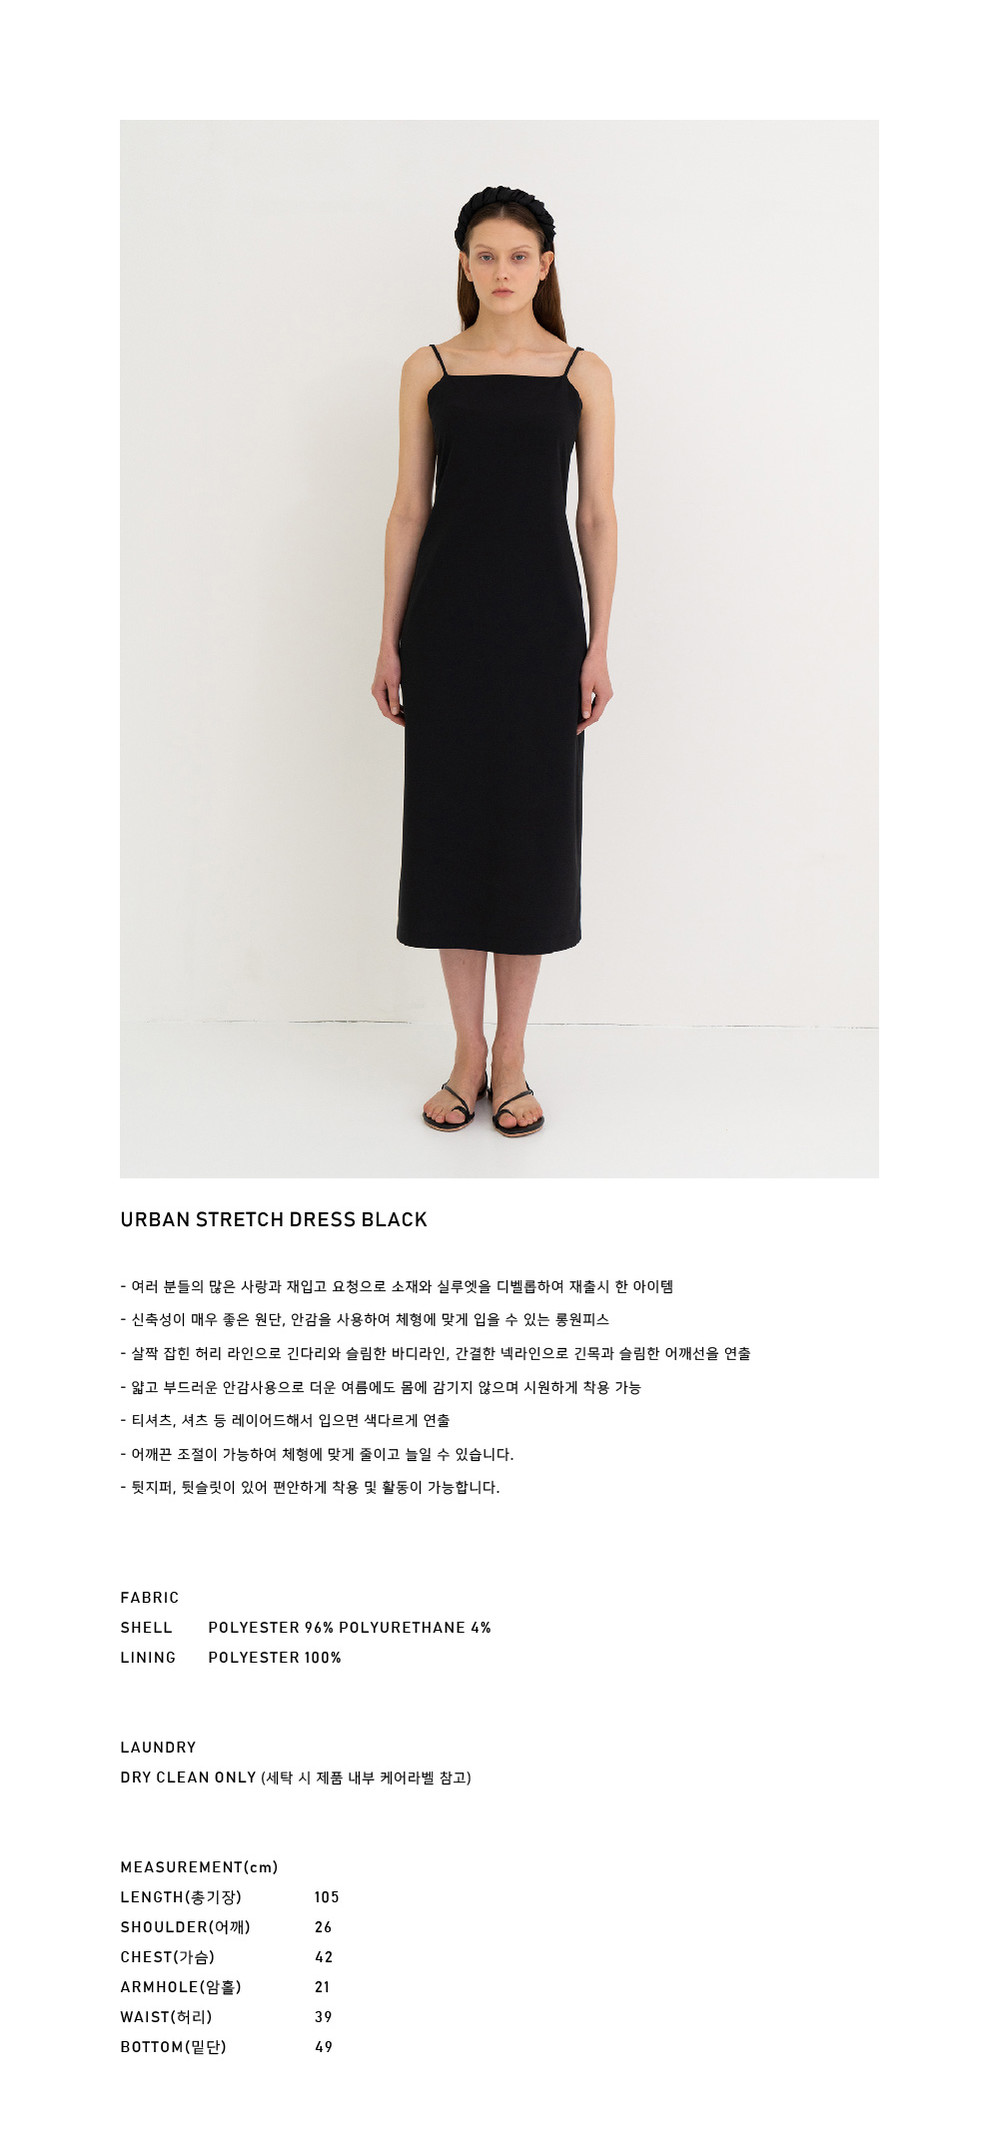 URBAN STRETCH DRESS BLACK